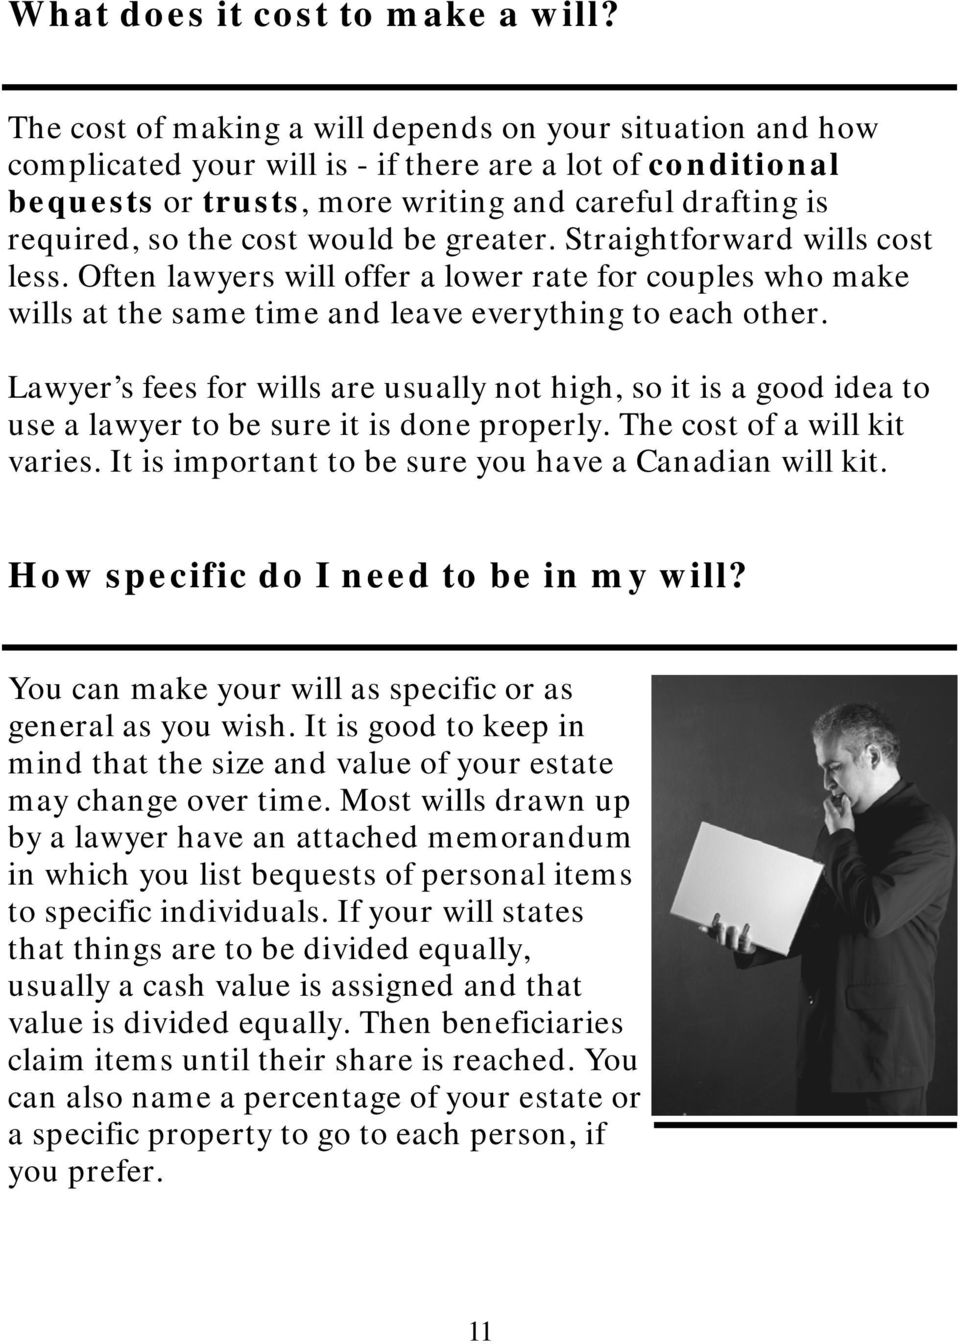 would be greater. Straightforward wills cost less. Often lawyers will offer a lower rate for couples who make wills at the same time and leave everything to each other.